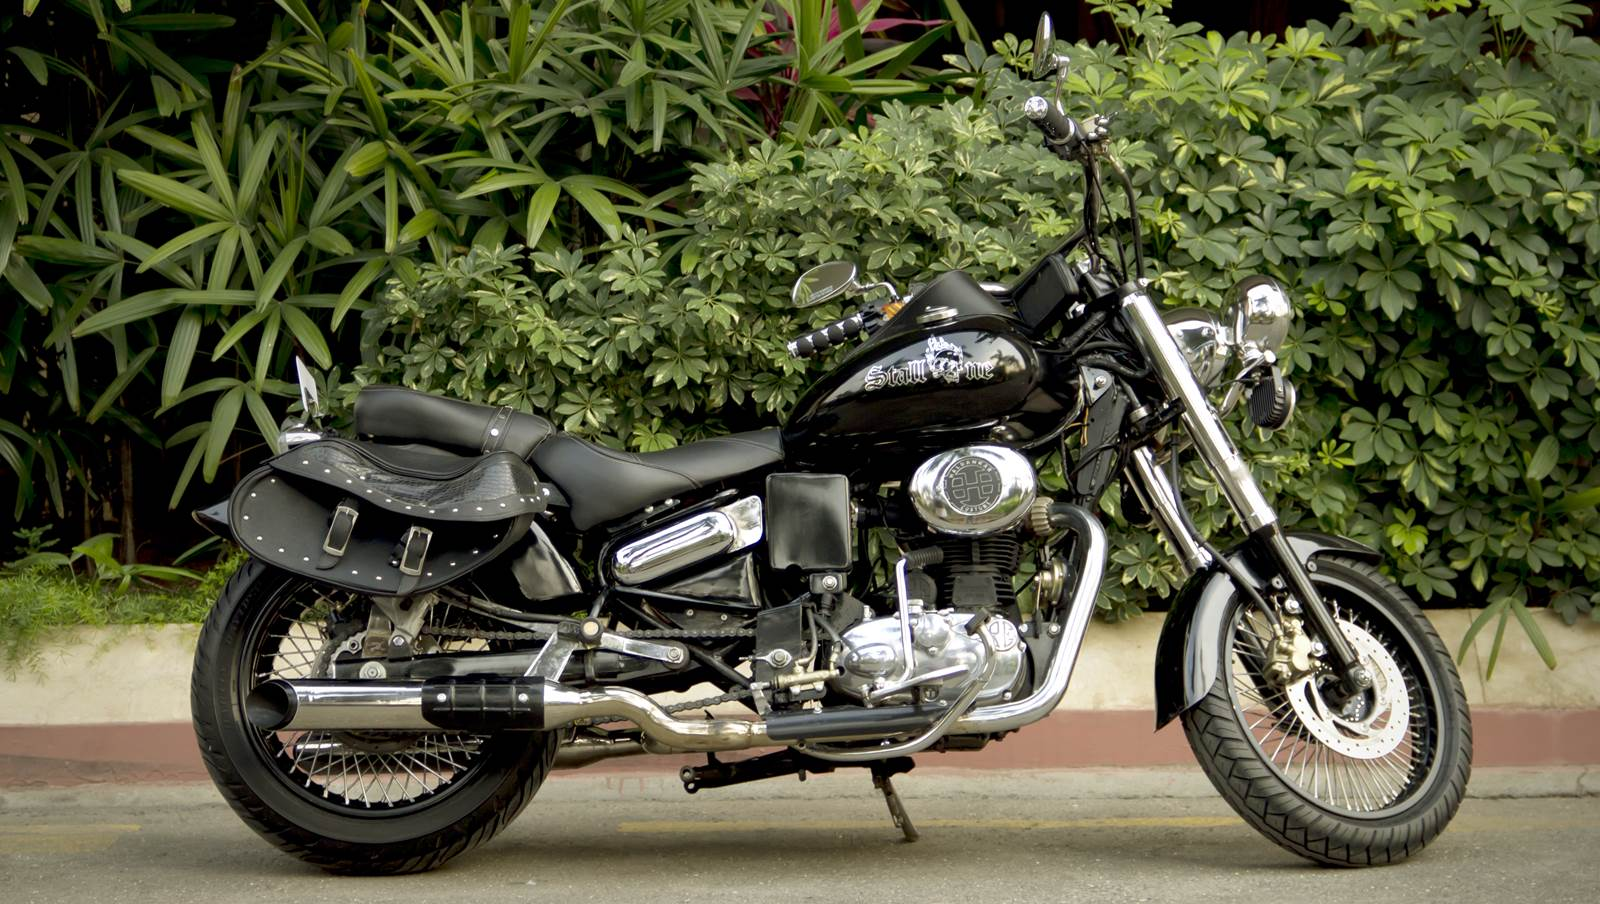 stallone royal enfield classic 500 cruiser by haldankar customs. Black Bedroom Furniture Sets. Home Design Ideas